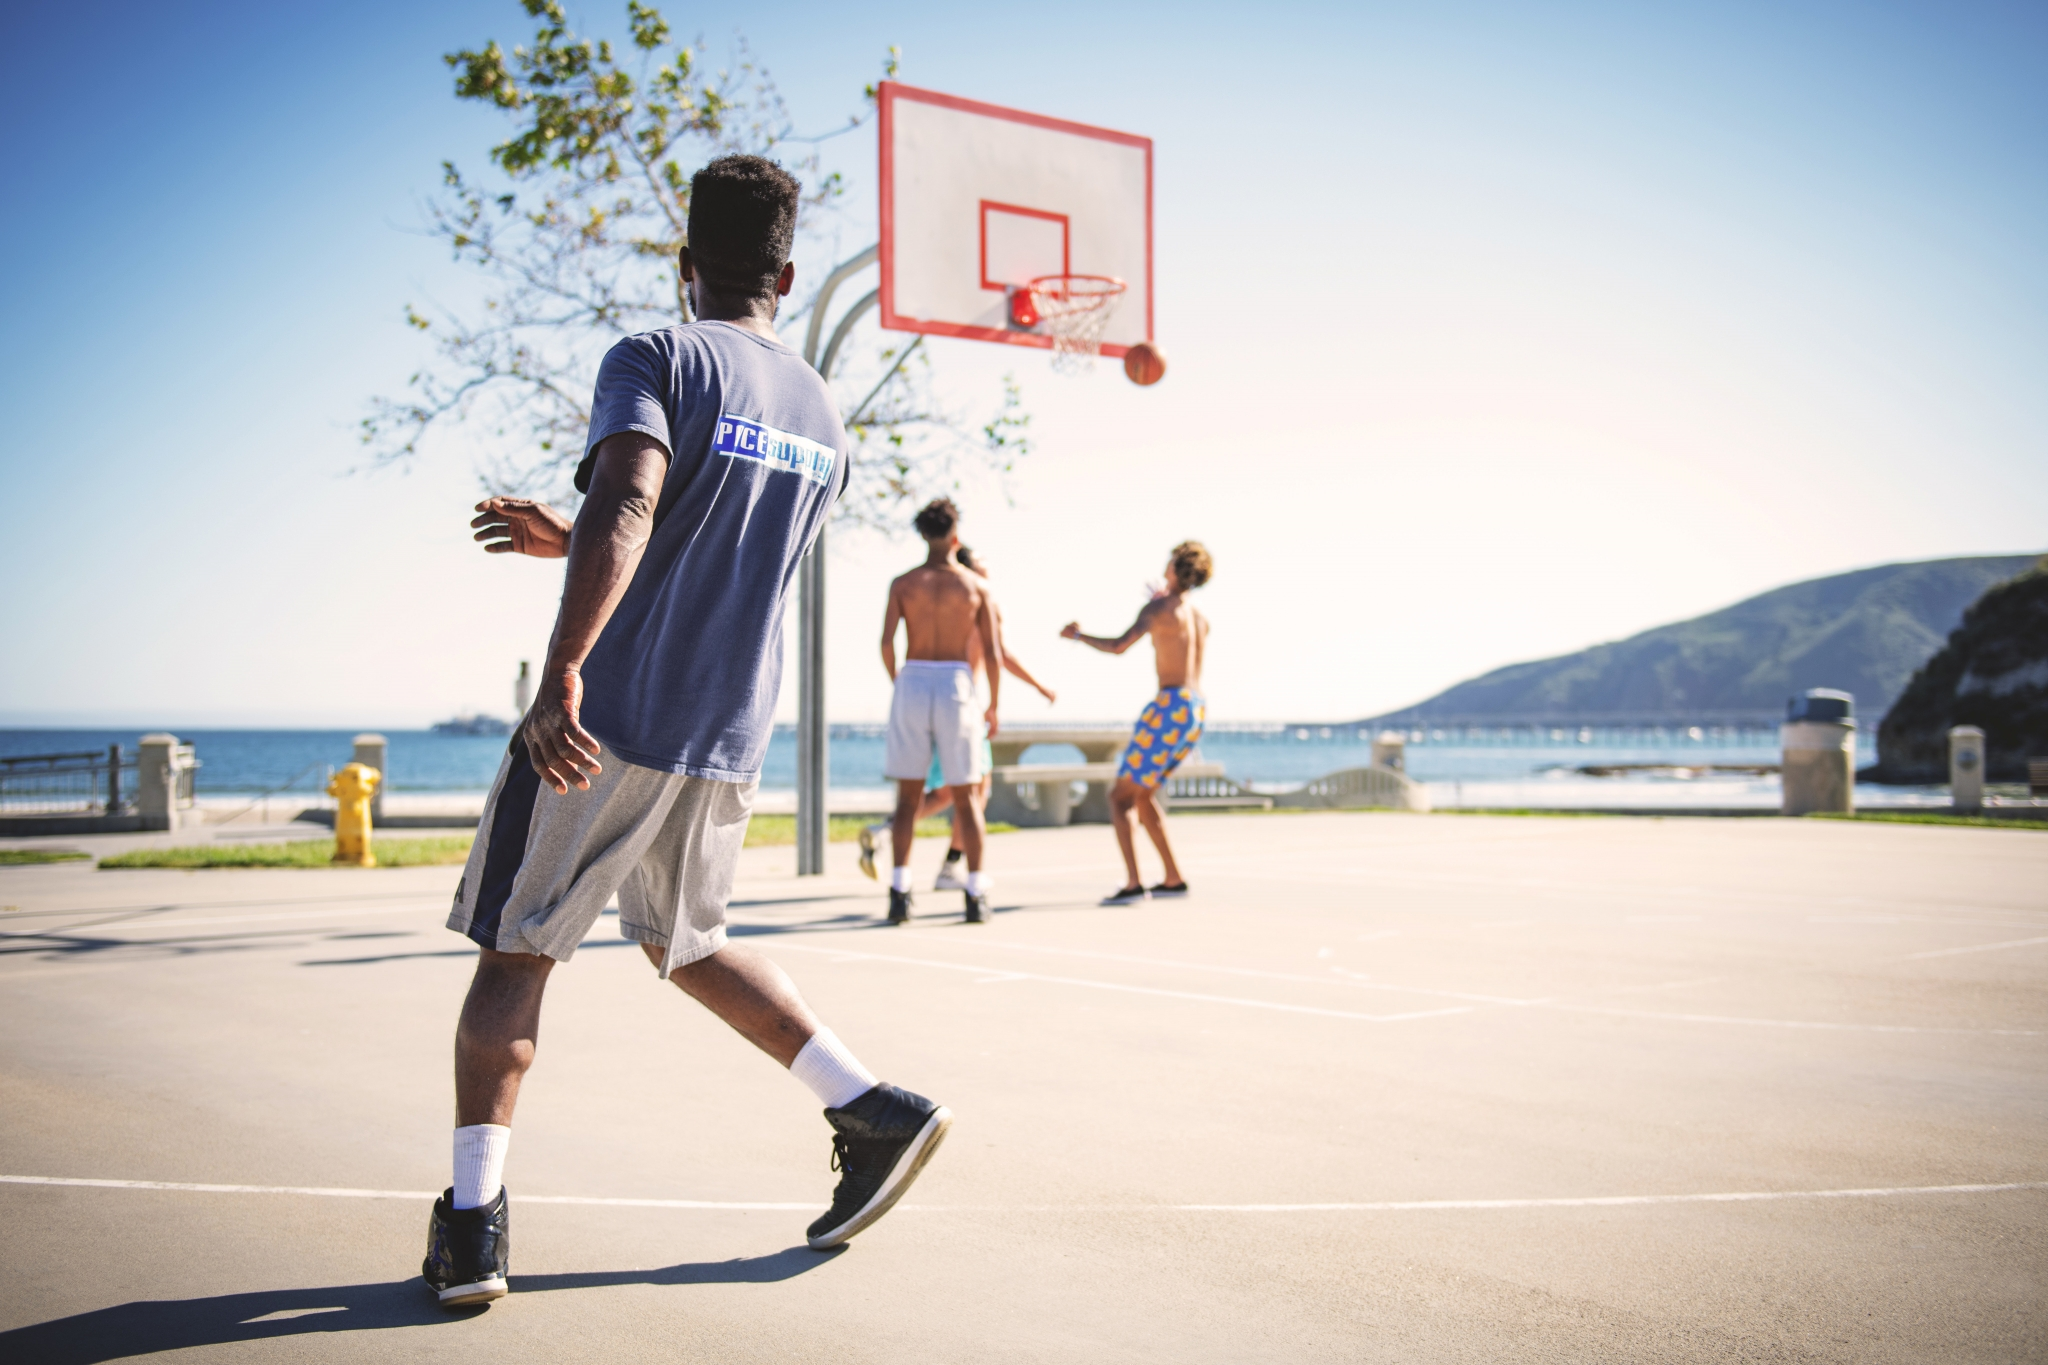 Cardio workout: guys playing basketball. Image credit: Tim Mossholder / Pexels